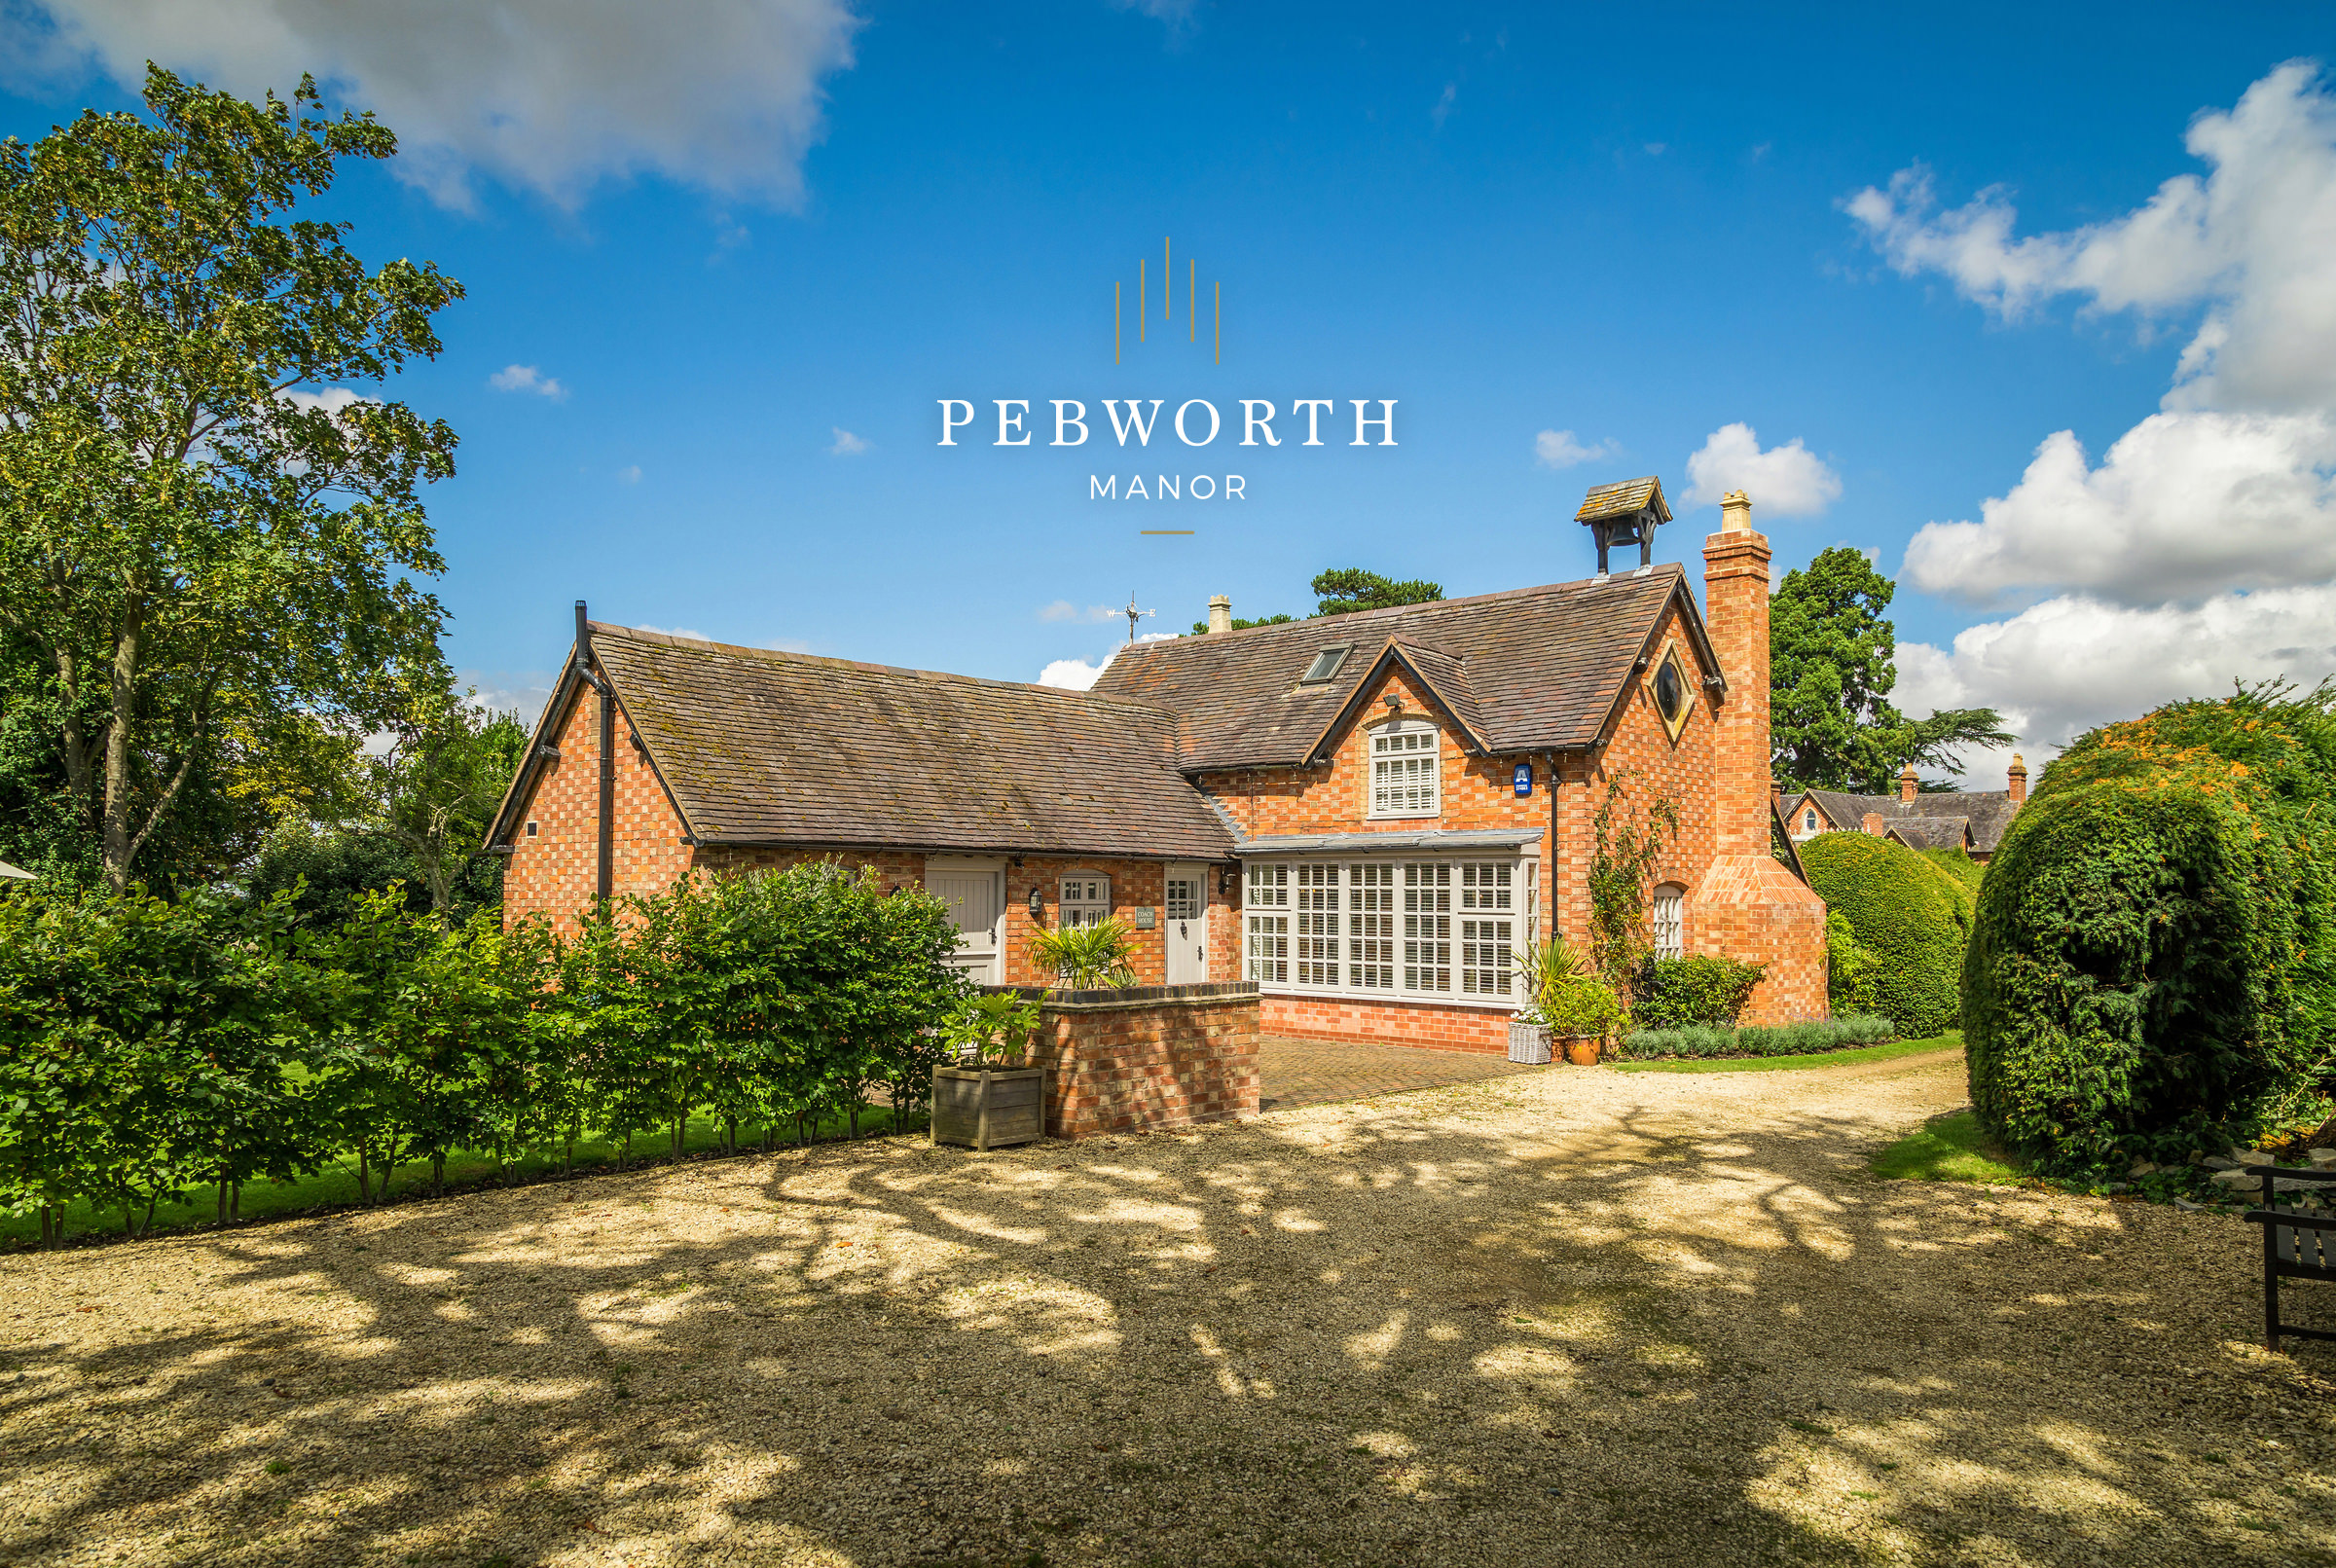 The Coach House at Pebworth Manor